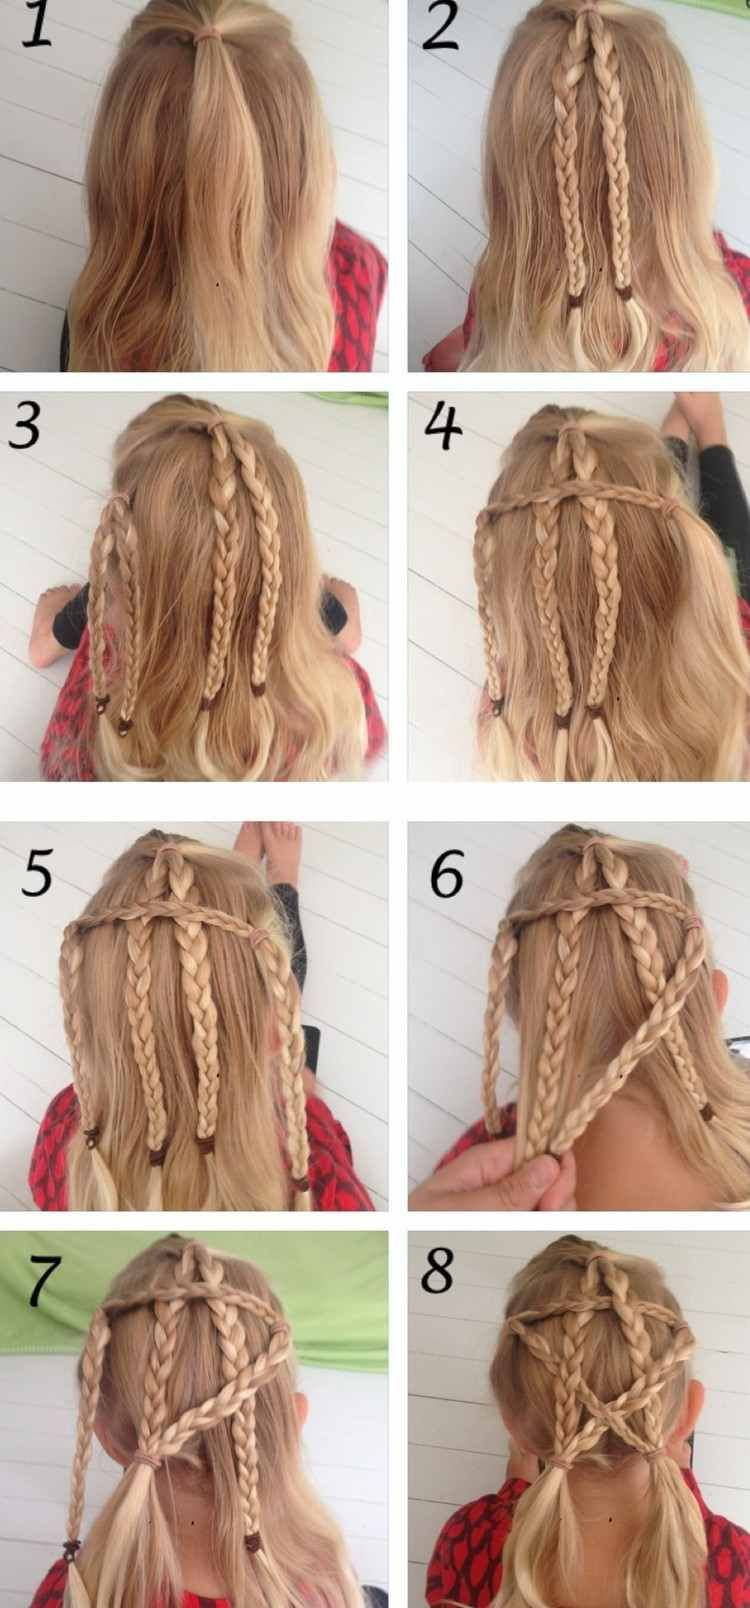 16++ Coiffure fillette facile inspiration